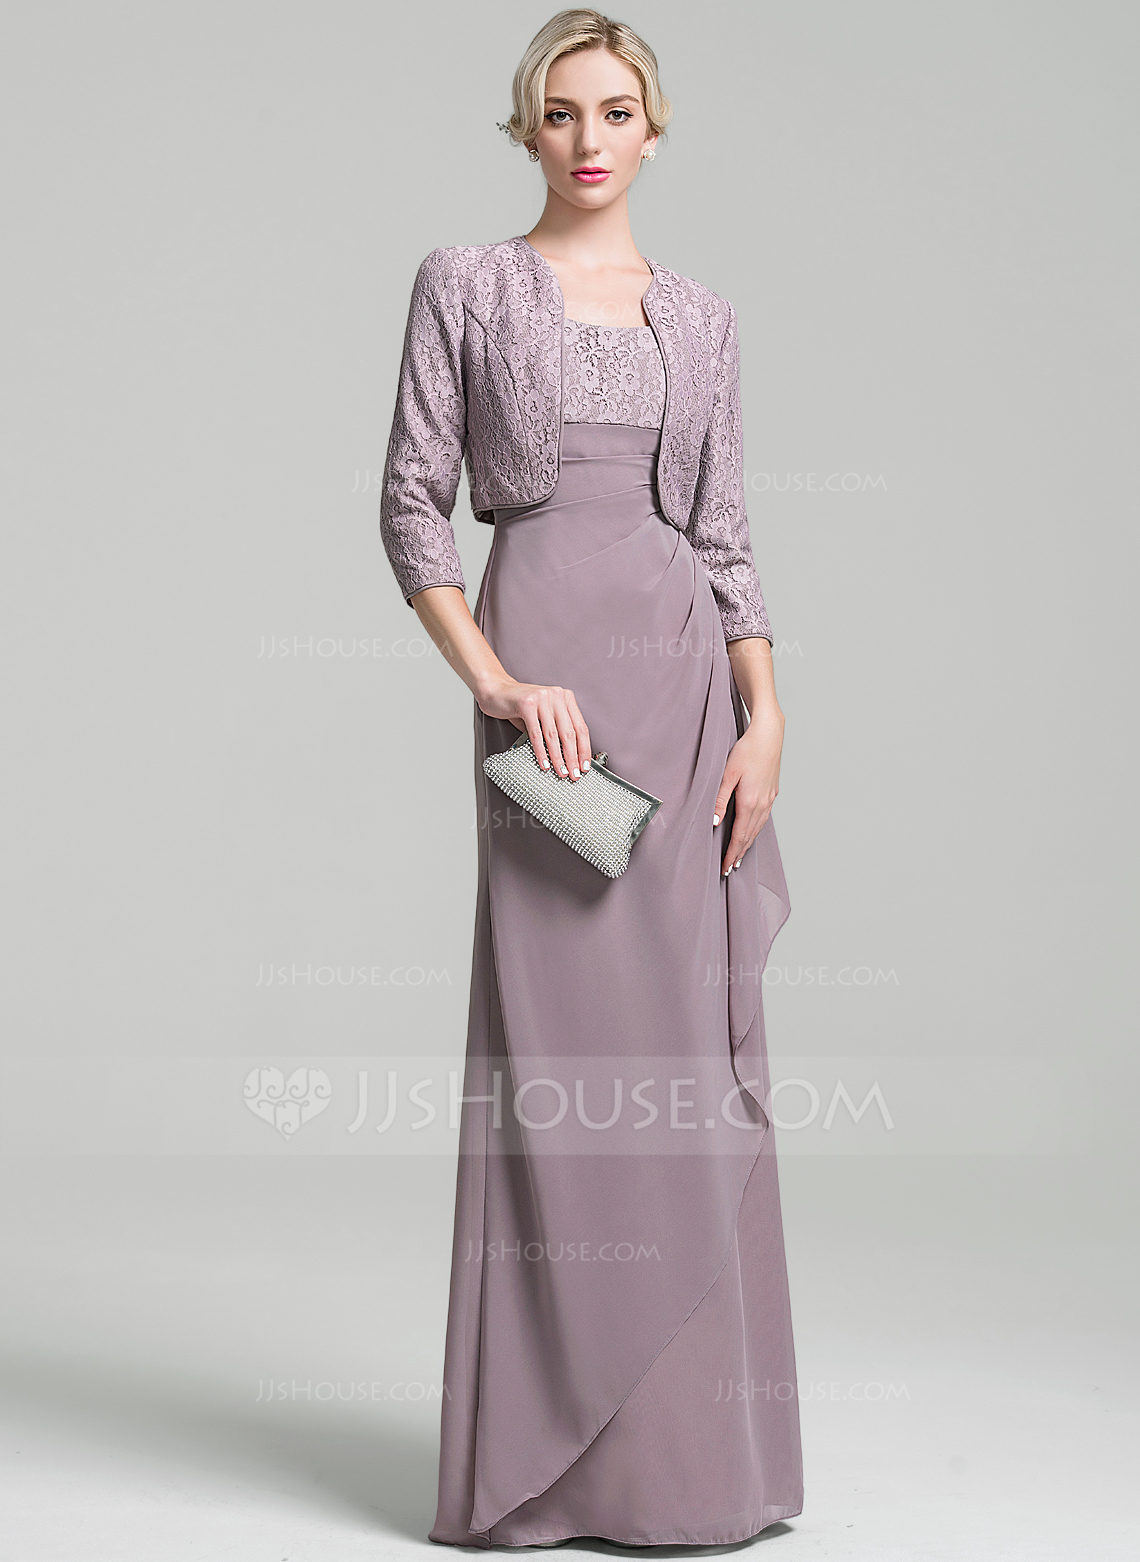 Sheath/Column Scoop Neck Floor-Length Chiffon Mother of the Bride Dress With Ruffle Cascading Ruffles